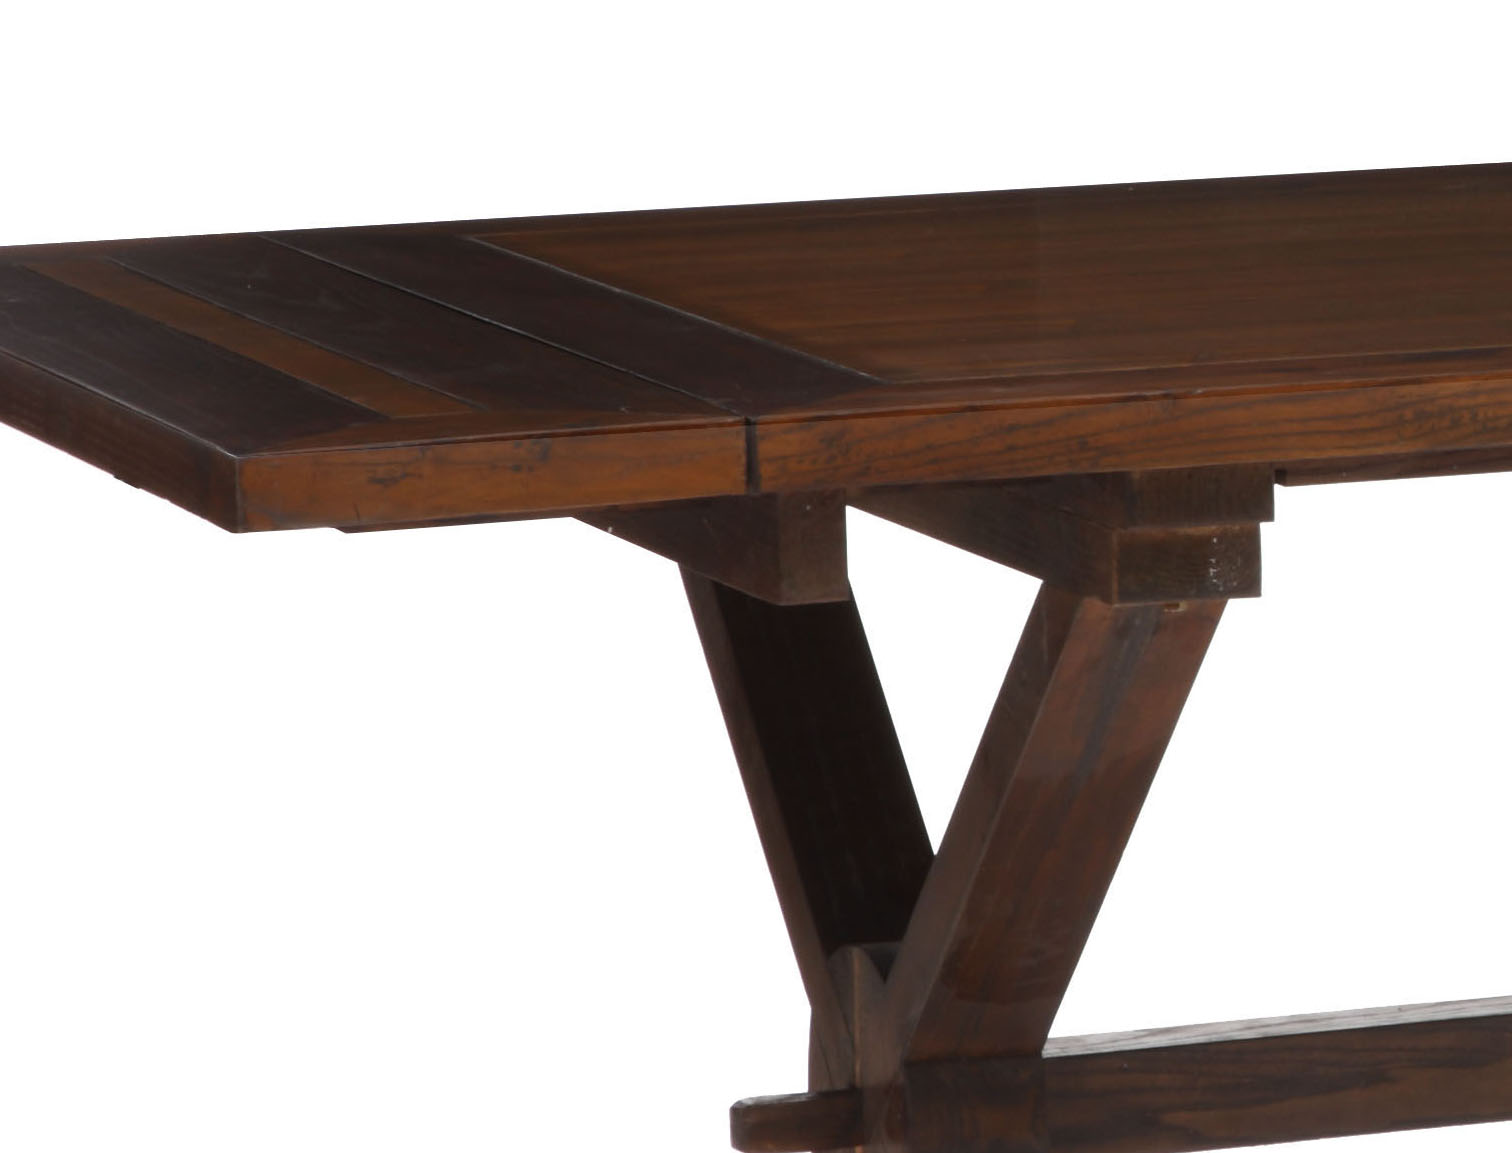 17th century style wooden extendable dining table with x legs chicago illinois zlau. Black Bedroom Furniture Sets. Home Design Ideas